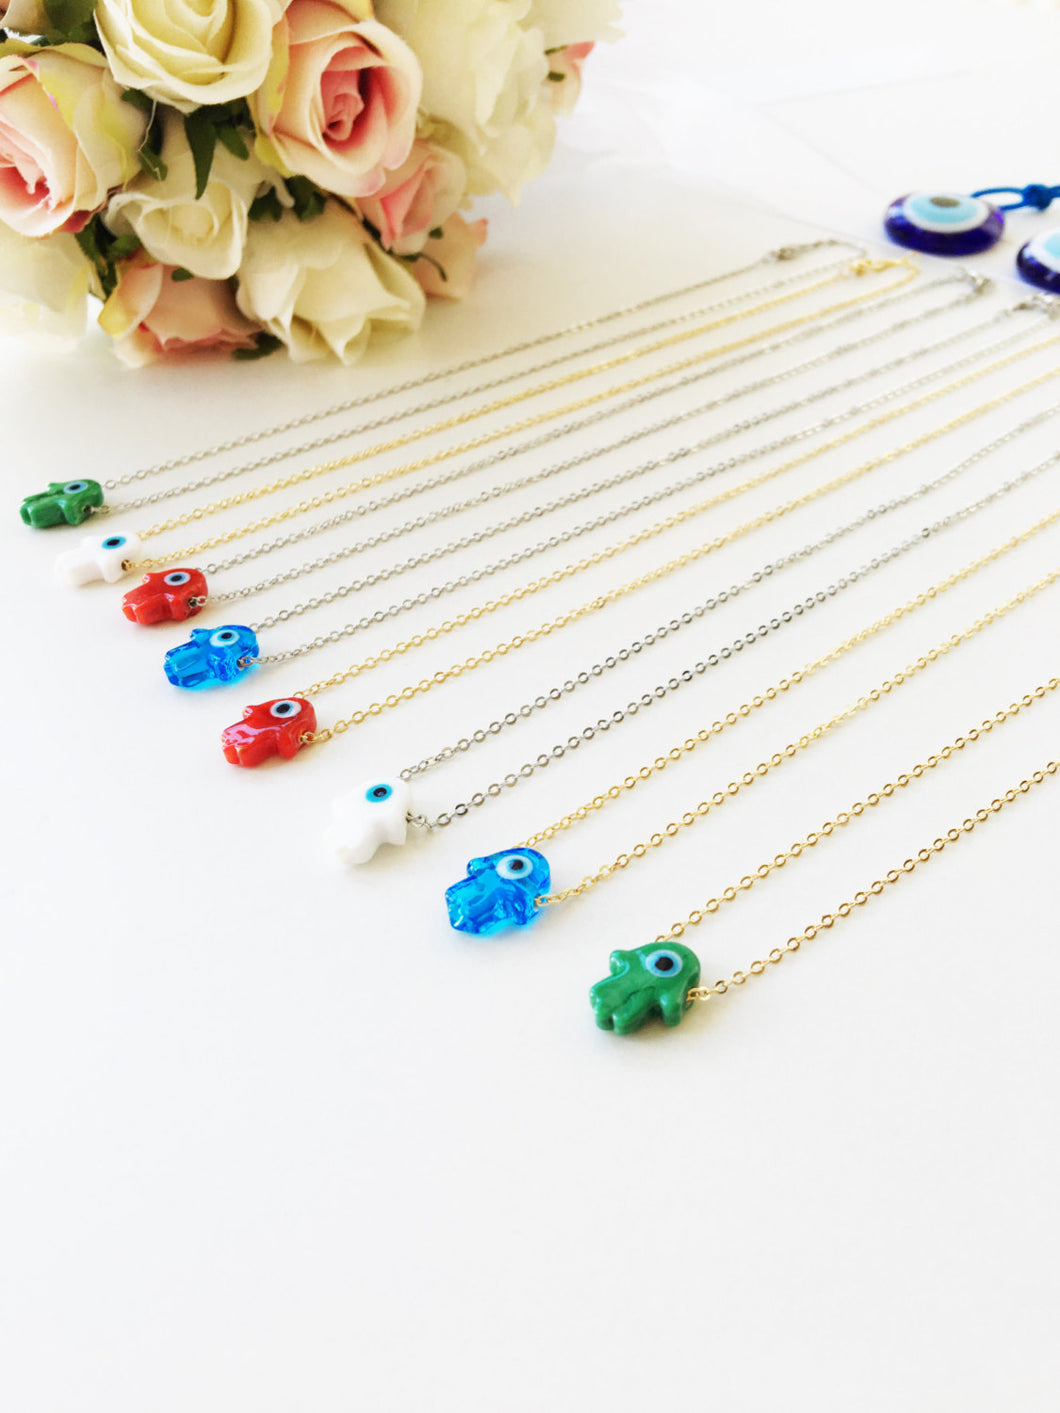 Hamsa evil eye necklace, glass hamsa hand necklace, gold plated hamsa necklace - Evileyefavor